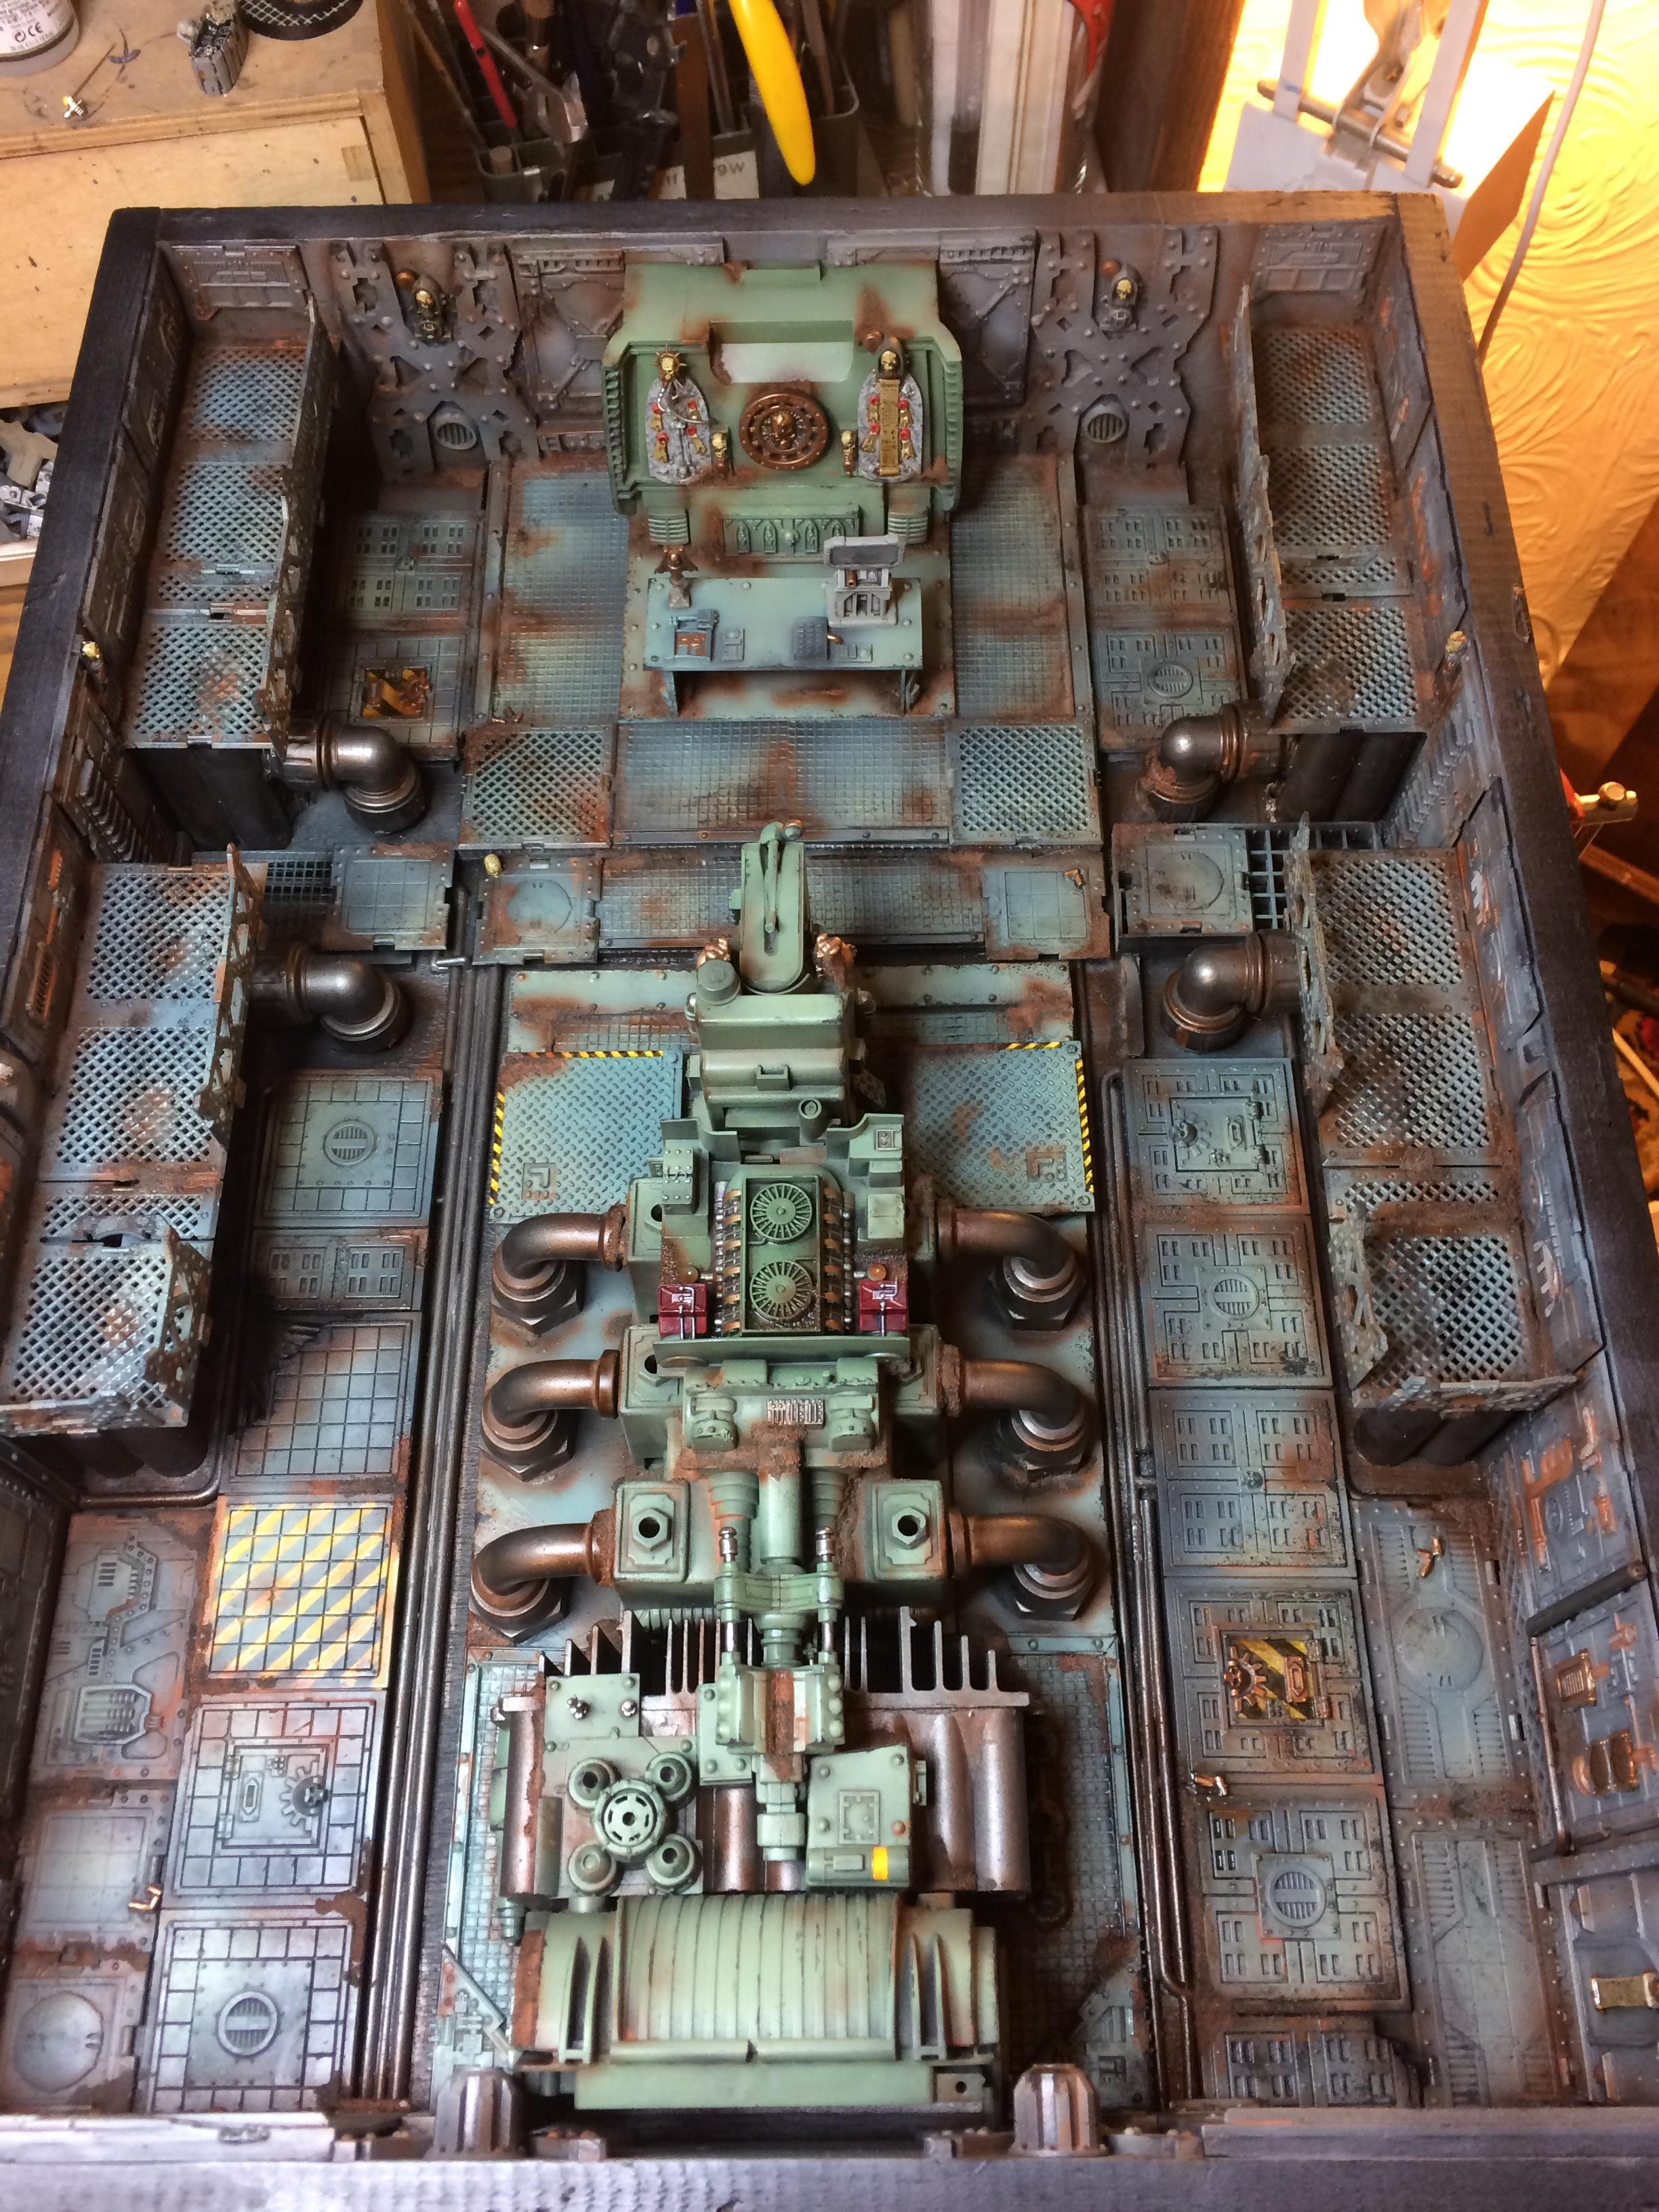 Control Room, Custom, Inq28, Inquisimunda, Modular, Necromunda, Scratch Build, Space Hulk, Spacehulk, Terrain, Warhammer 40,000